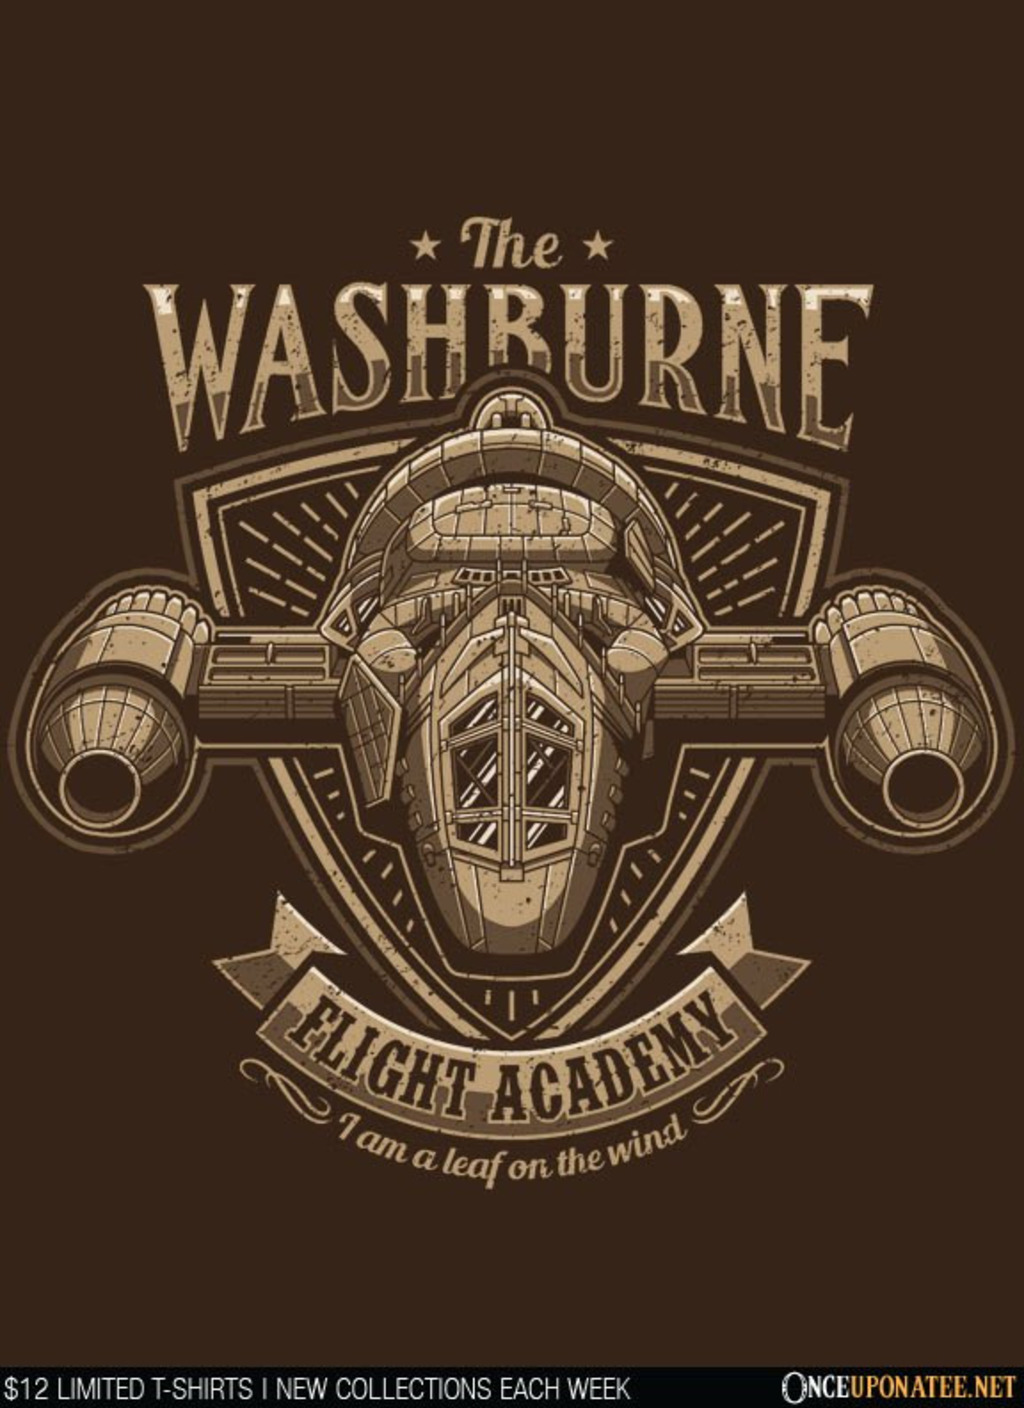 Once Upon a Tee: Washburne Flight Academy